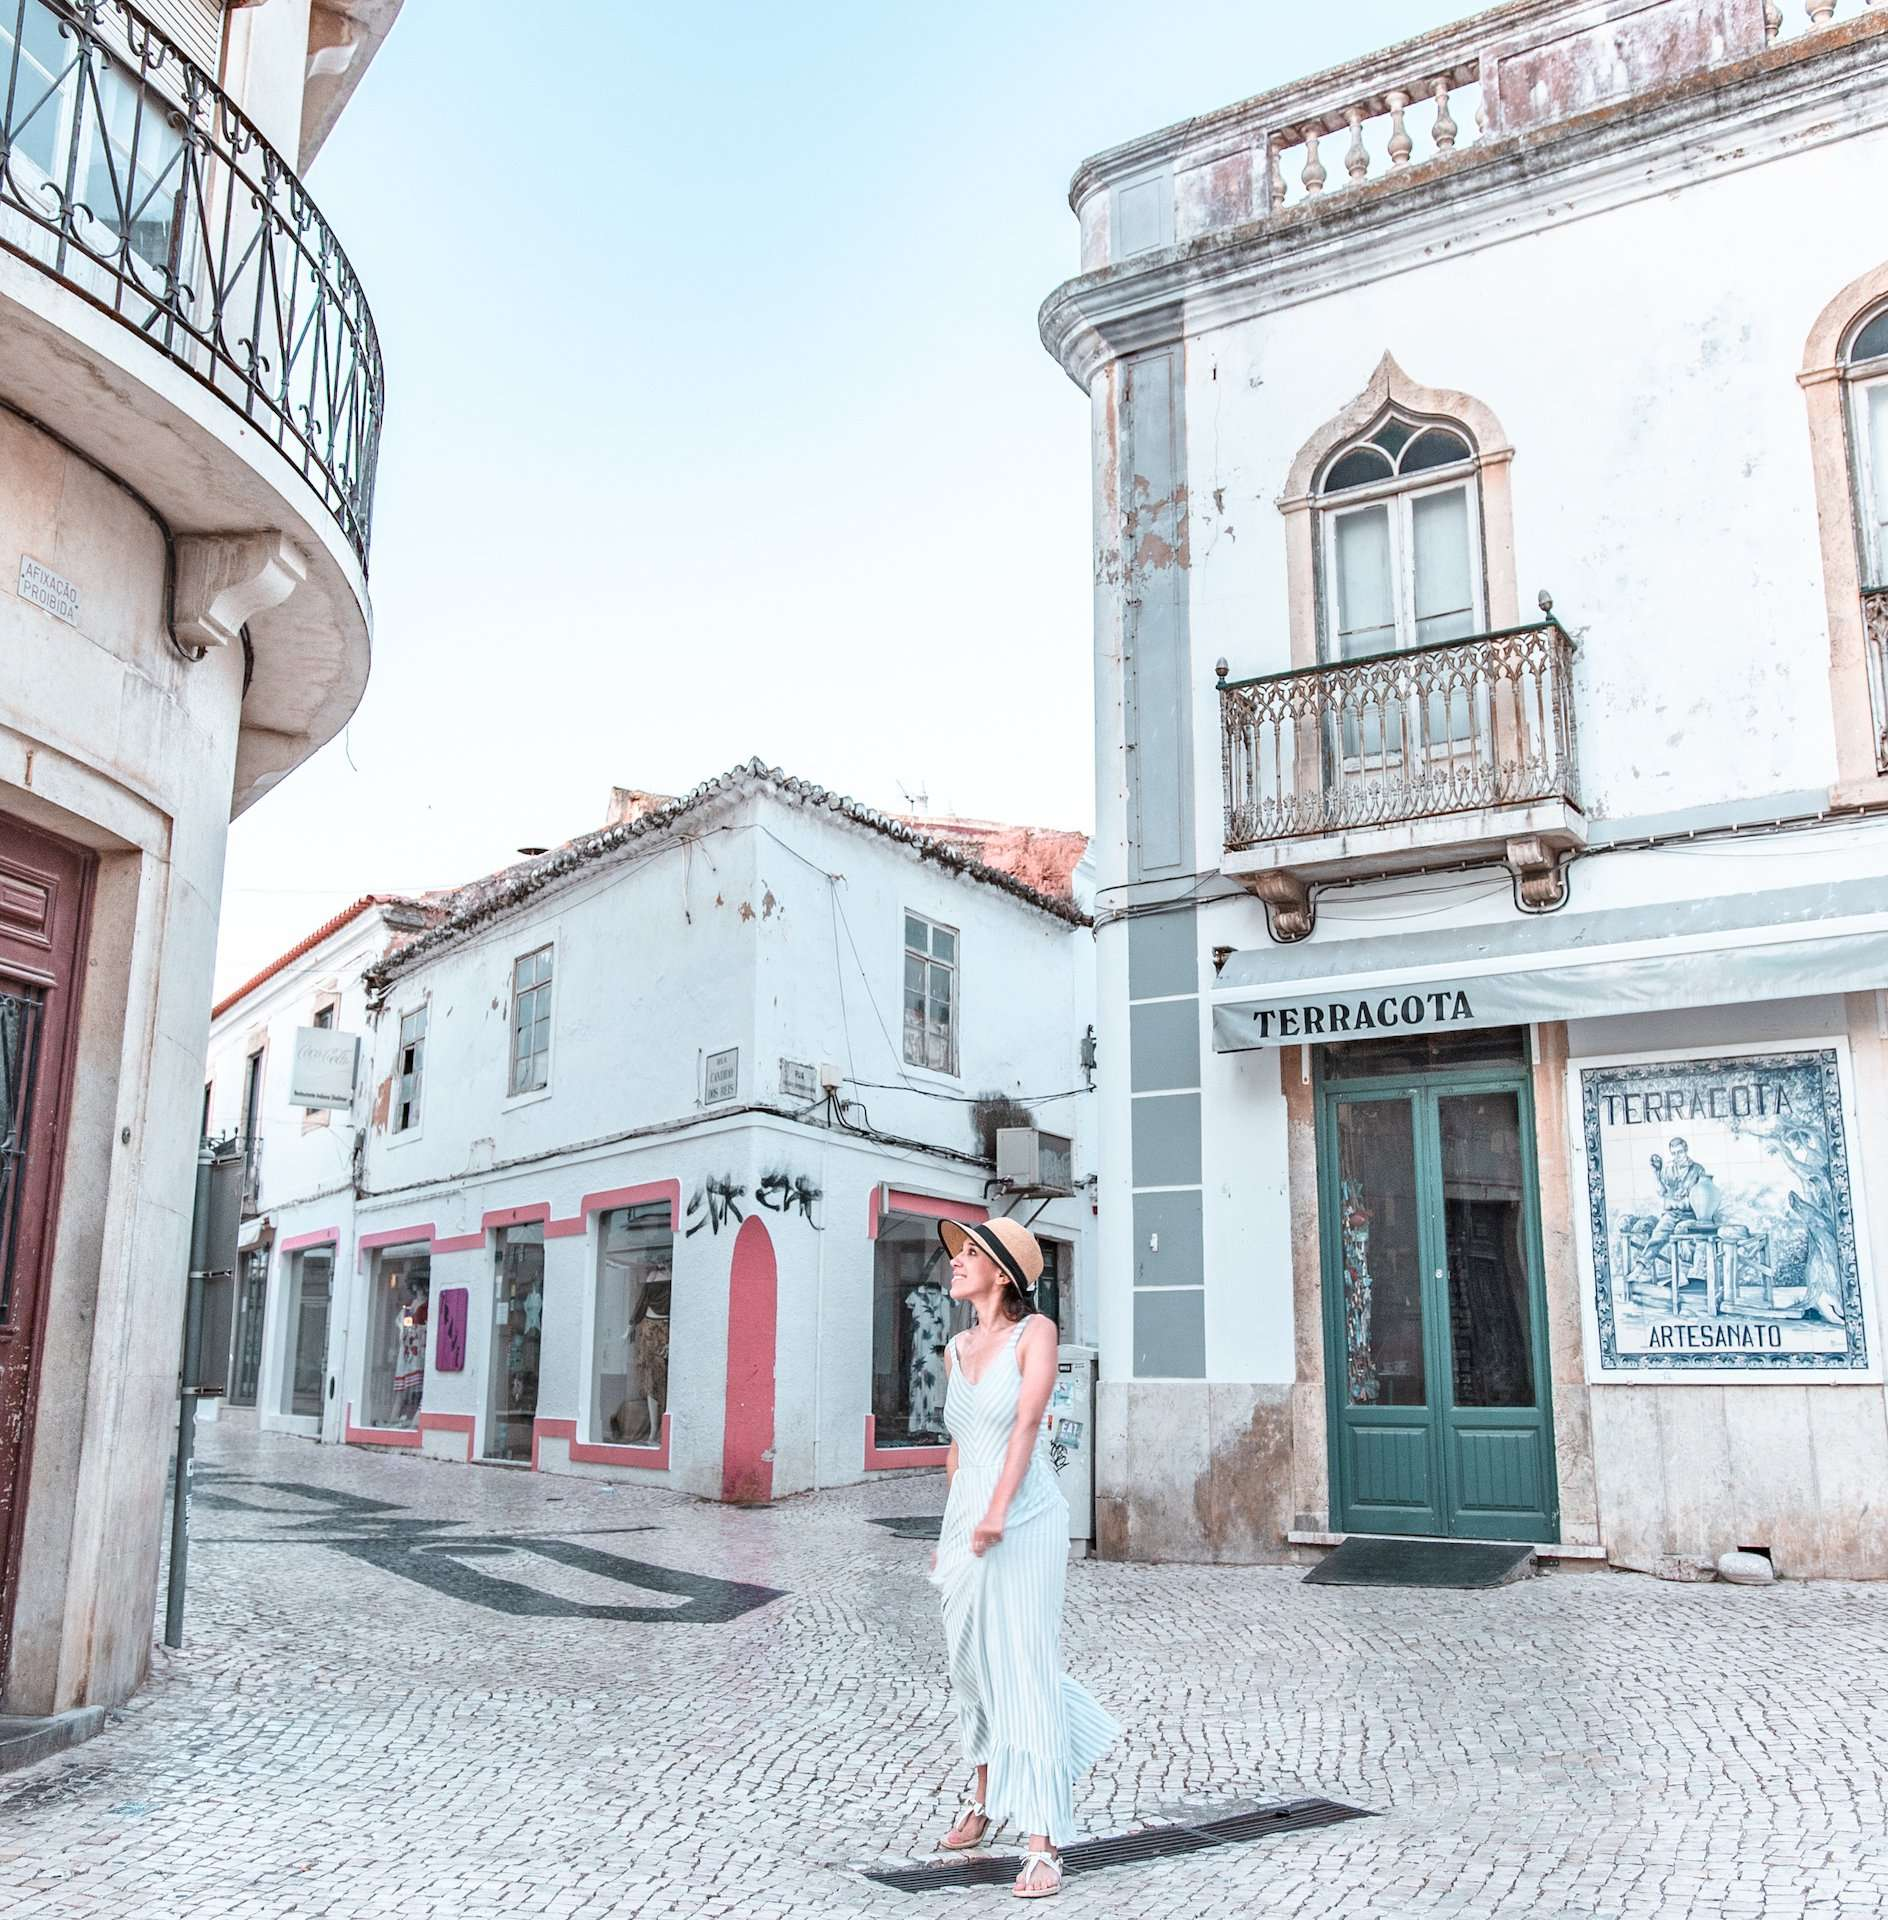 Exploring Old City in Lagos, Portugal